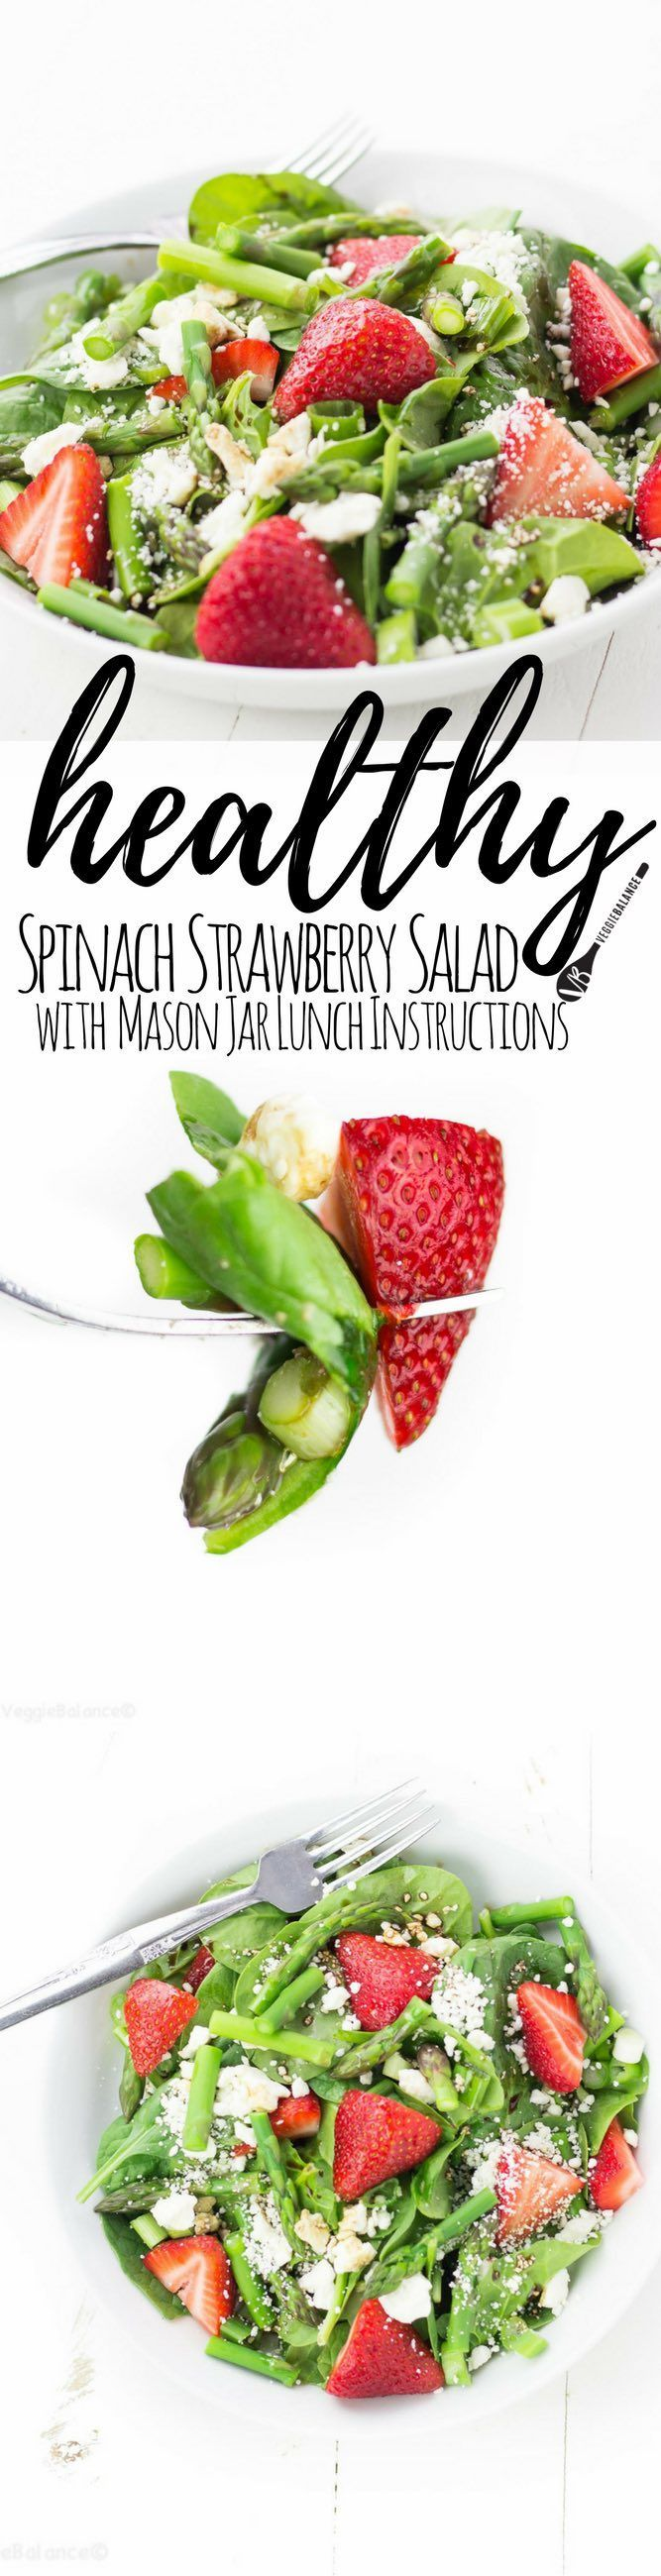 Step into summer with this fresh Strawberry Spinach Salad with Asparagus. A few beautiful and healthy ingredients blended together over a bed of spinach than drizzled with balsamic vinaigrette. (Gluten-Free, Vegan friendly)